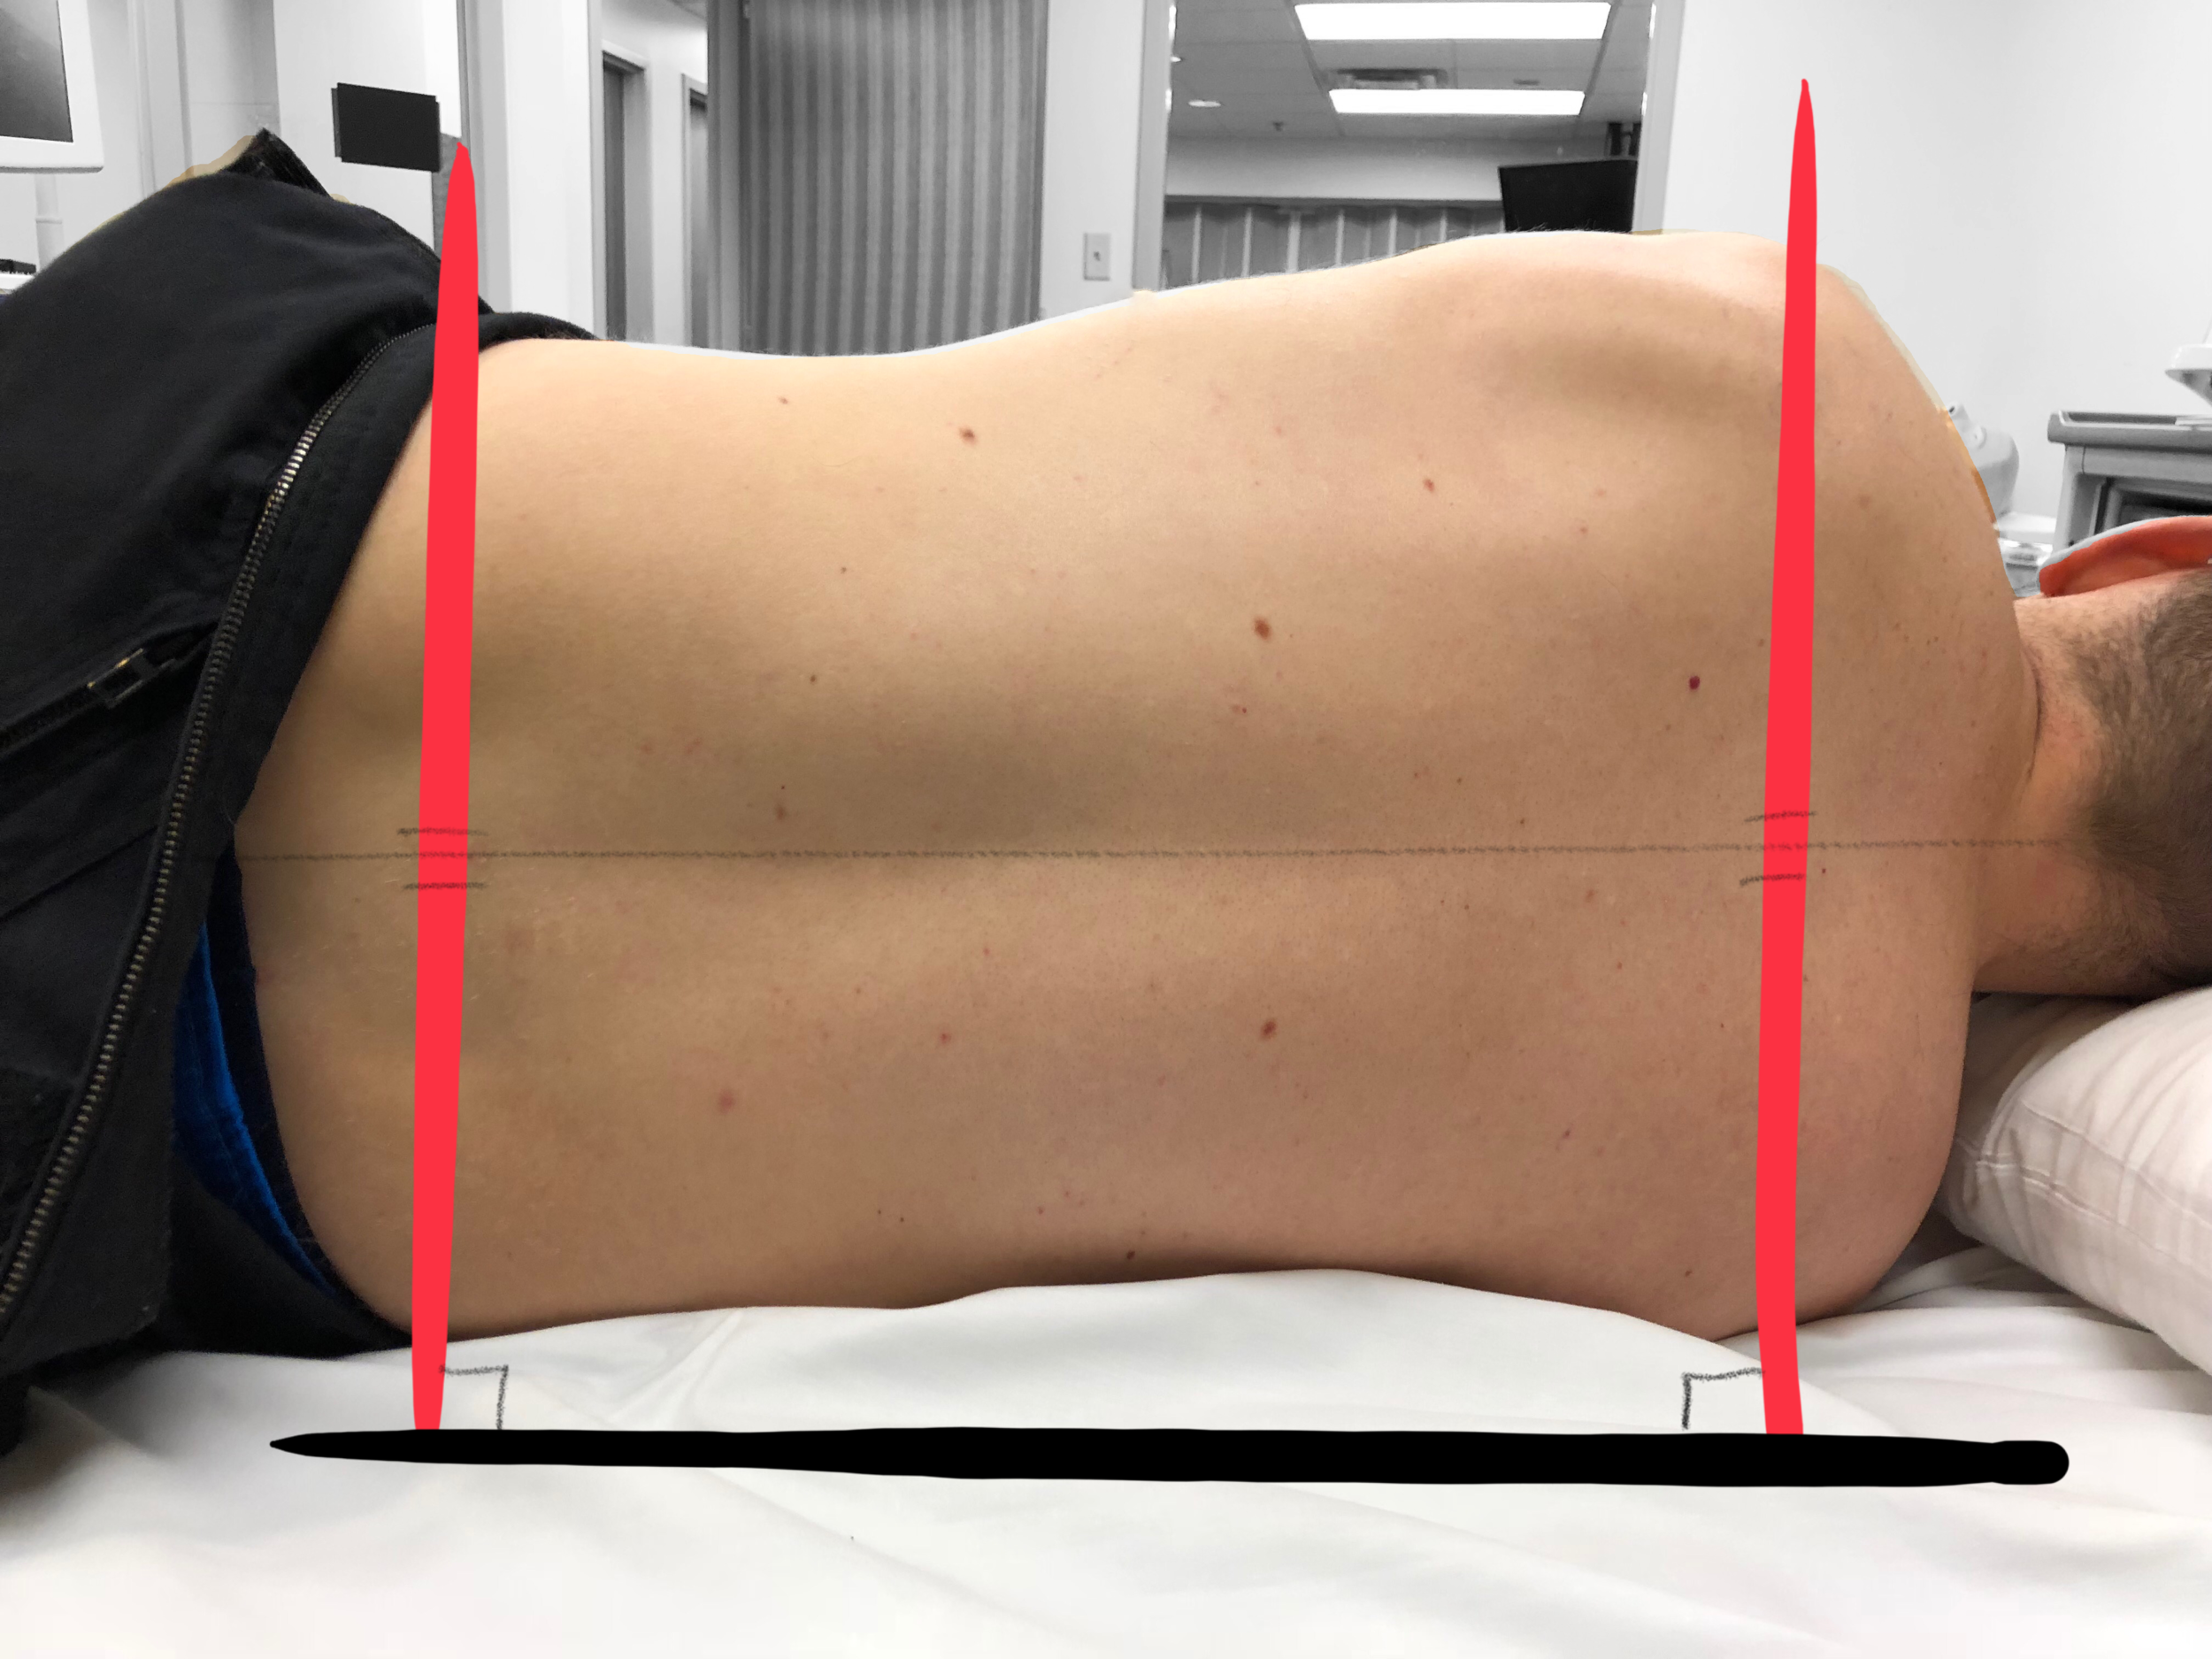 Image 4 - Good Lateral decubitus positioning -  note the shoulders and hips are parallel to each other and perpendicular to the bed, making external landmarks more easy to visualize